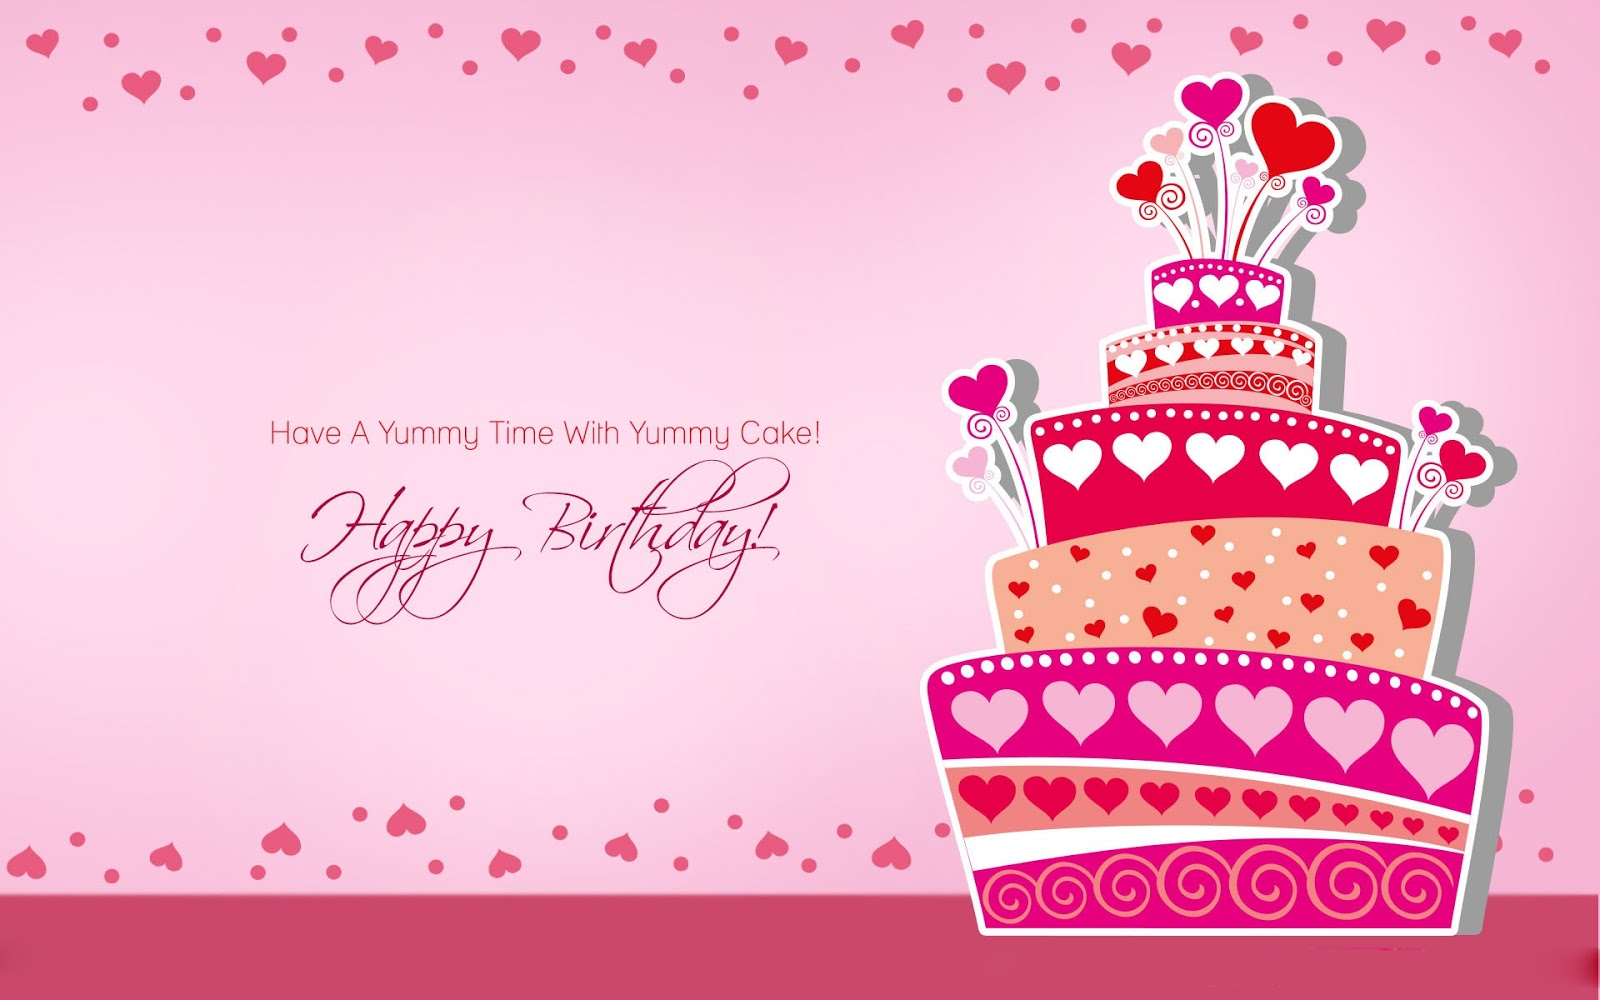 Birthday greeting cards sweetheart birthday cards romantic send a cute birthday card to share with your sweetheart a birthdays message is not complete until youve sent happy birthday message through online ecards bookmarktalkfo Images